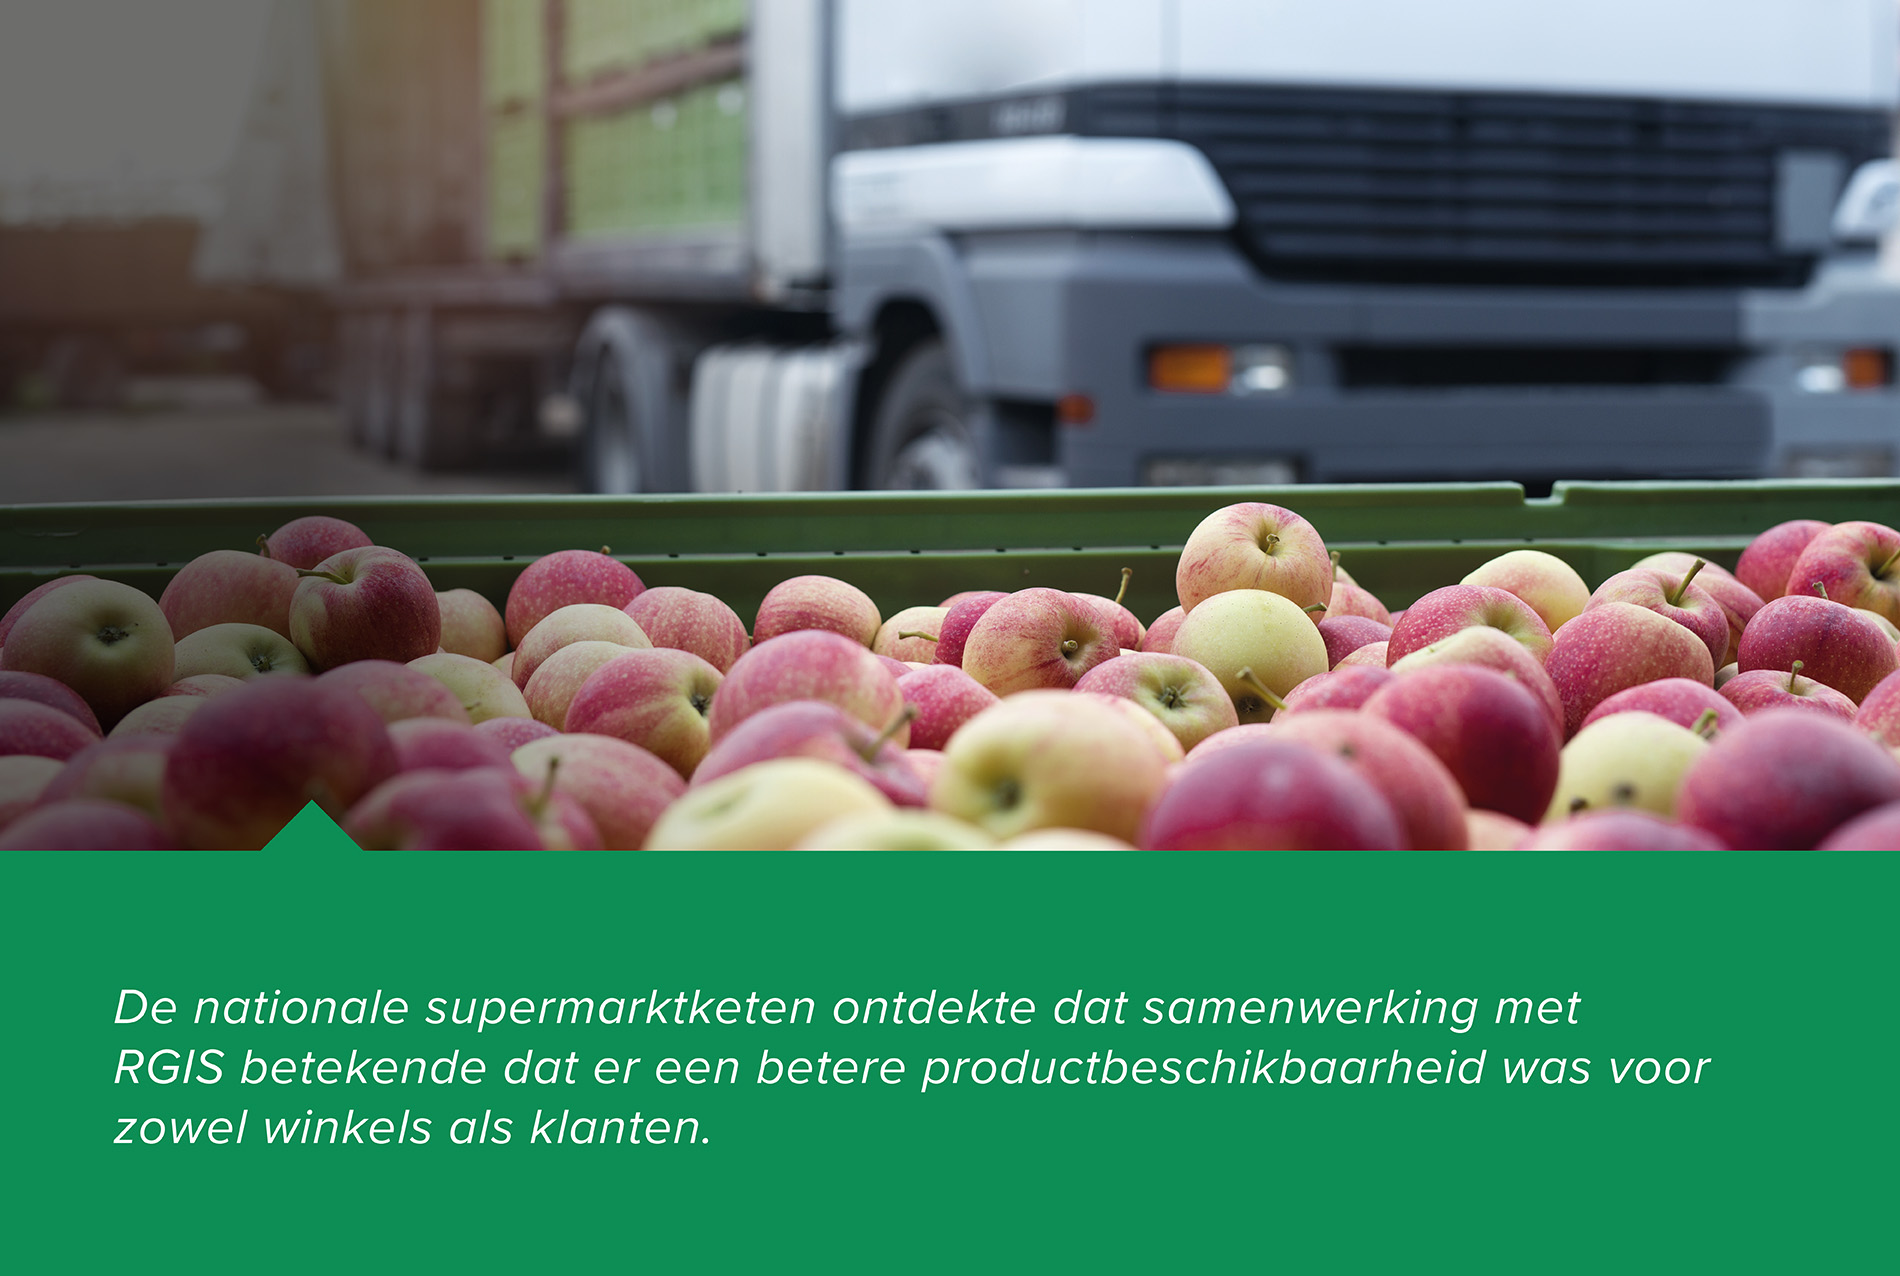 Case study RGIS Supply Chain Audit Bederfelijke artikelen - Nationale supermarkt